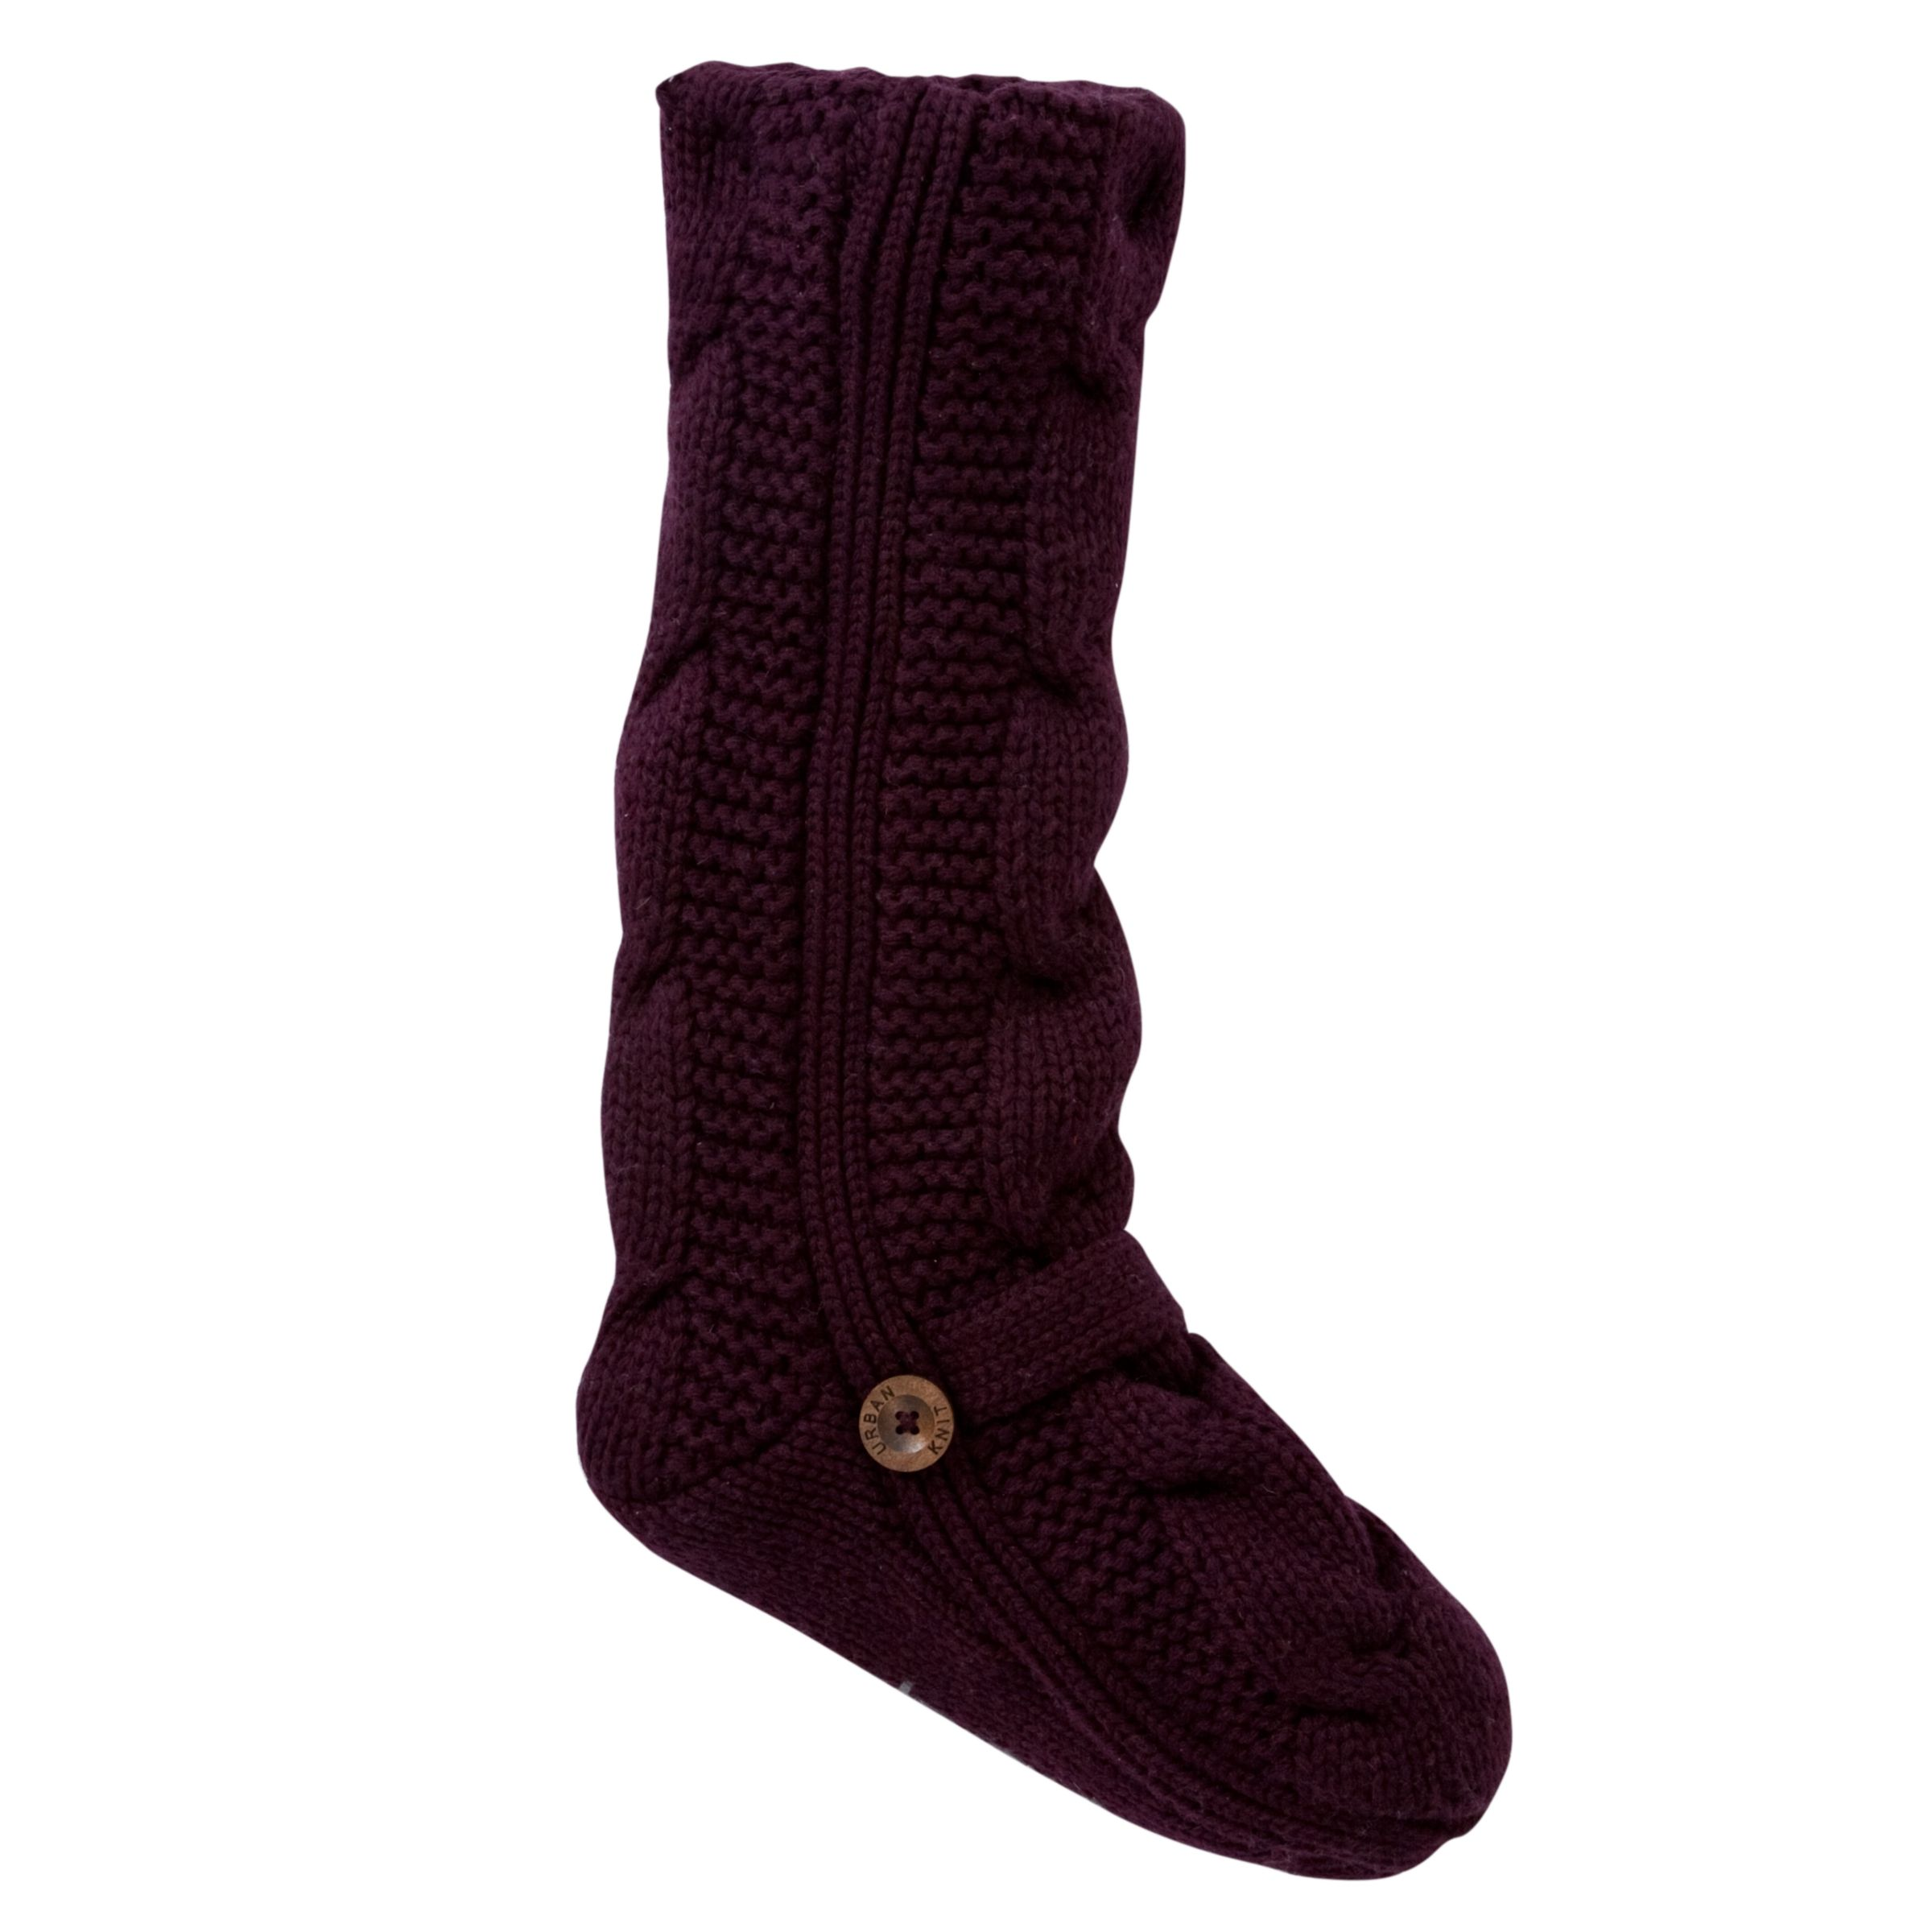 Urban Knit Monster Cable Slip Socks, Plum